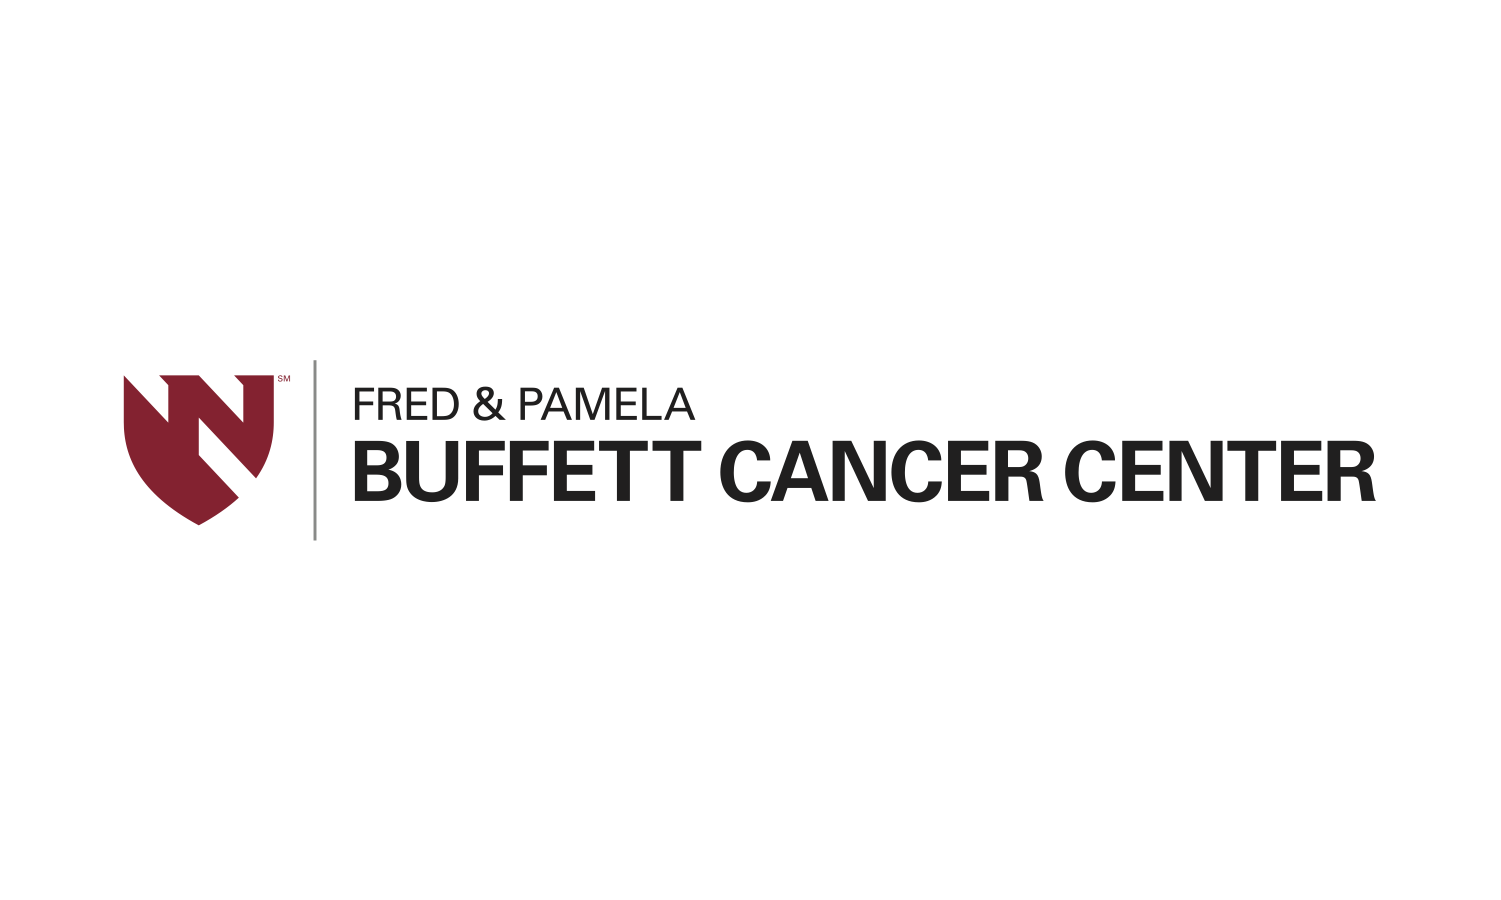 FRED & PAMELA BUFFETT CANCER CENTER BRAIN TUMOR CANCER SUPPORT GROUP - omaha - Join us the third Wednesday of every other month for our Brain Tumor Cancer Support Group where we offer an open group discussion – led by one of our licensed social workers – for support no matter where you are in your journey. We welcome anyone with a current or past brain cancer diagnosis, as well as his or her family, caregivers and friends.